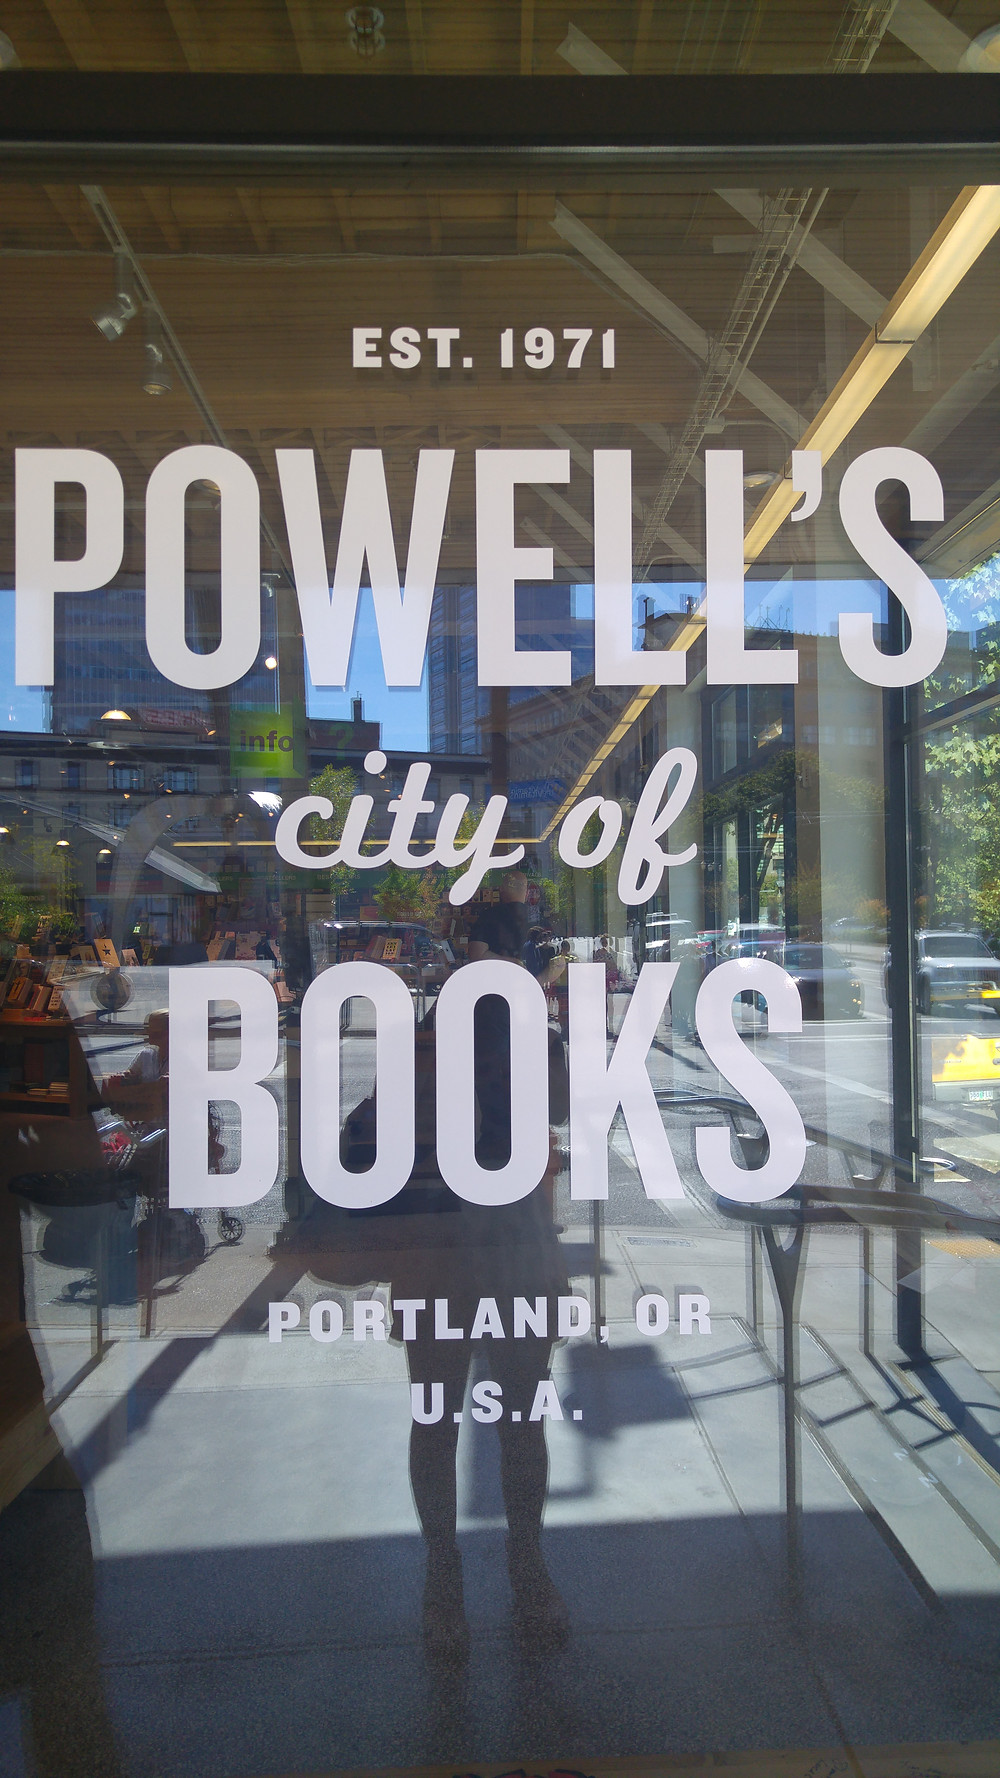 The incredible Powell's city of books in Portland